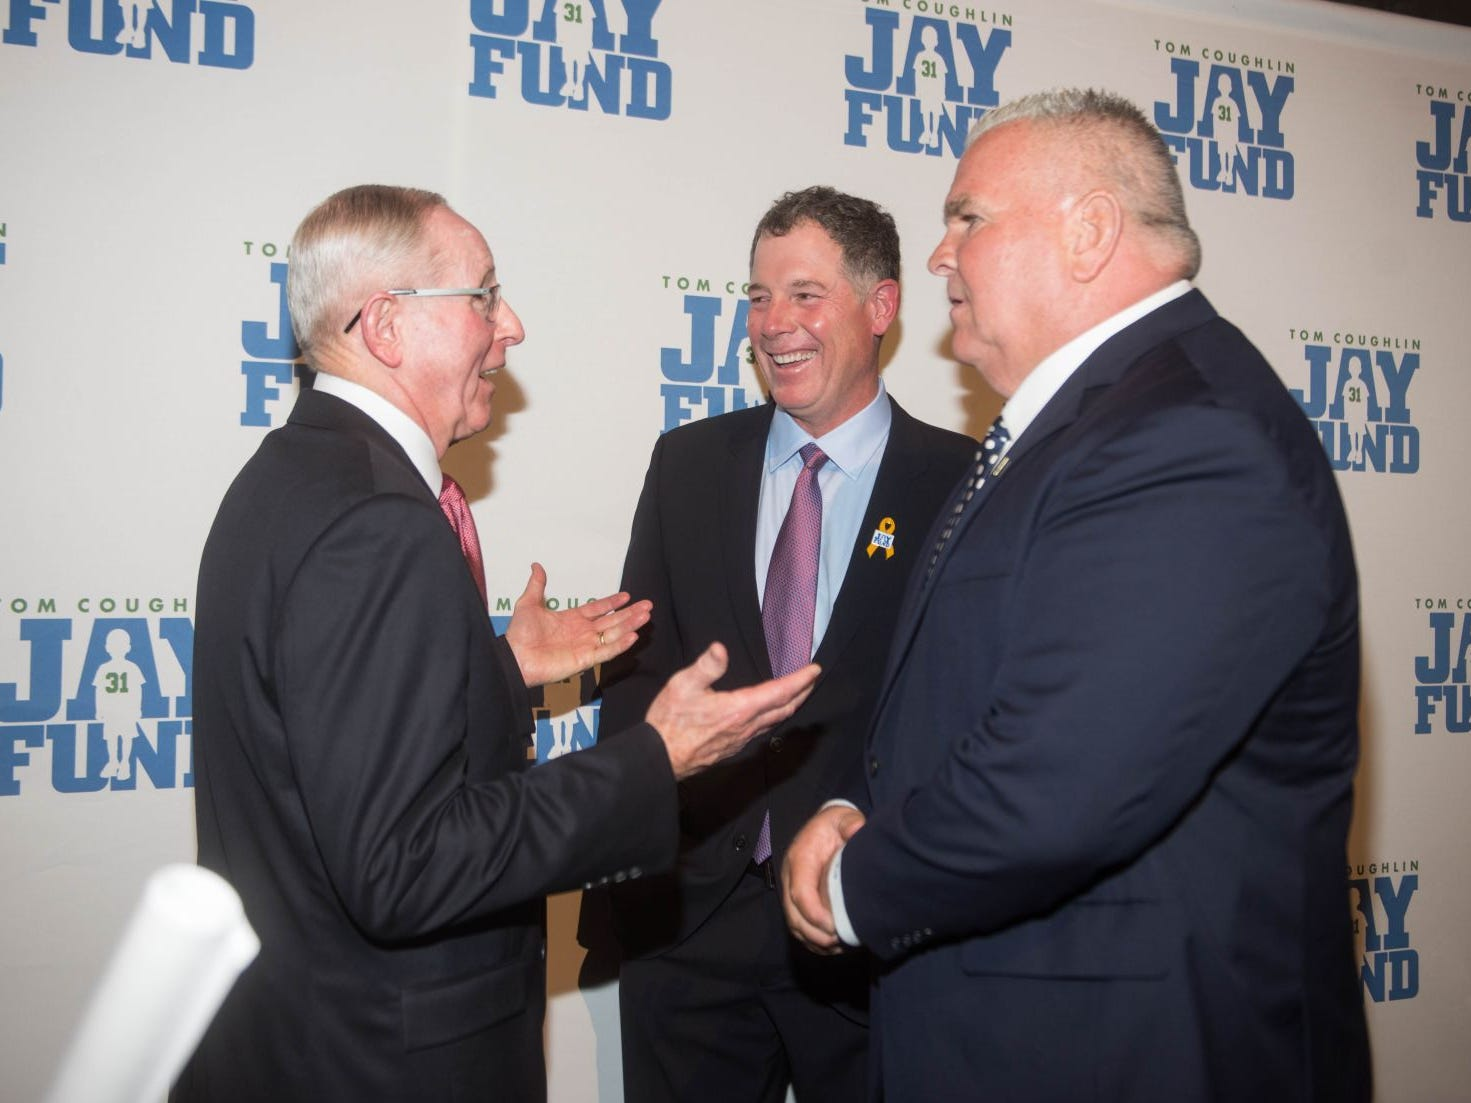 Tom Coughlin, Pat Shurmur and Mike Murphy. The 14th annual Jay Fund Champions for Children Gala was held at Cipriani 42nd Street. 09/21/2018